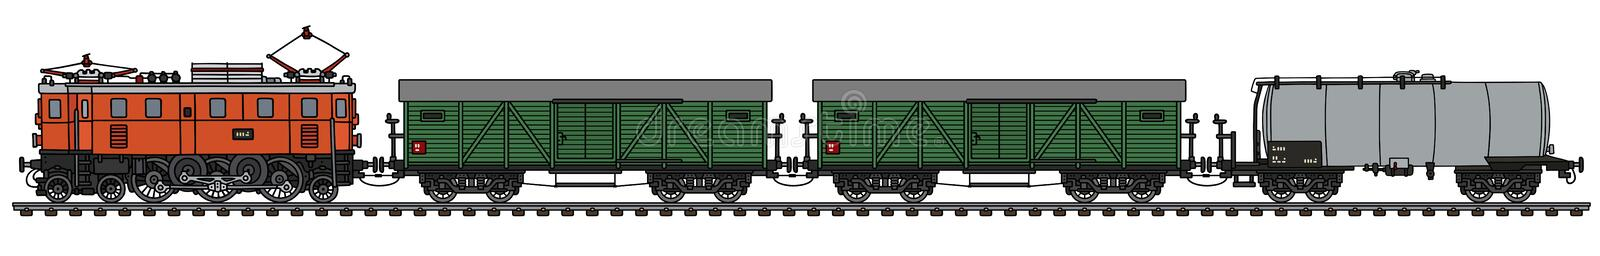 Old electric freight train royalty free illustration